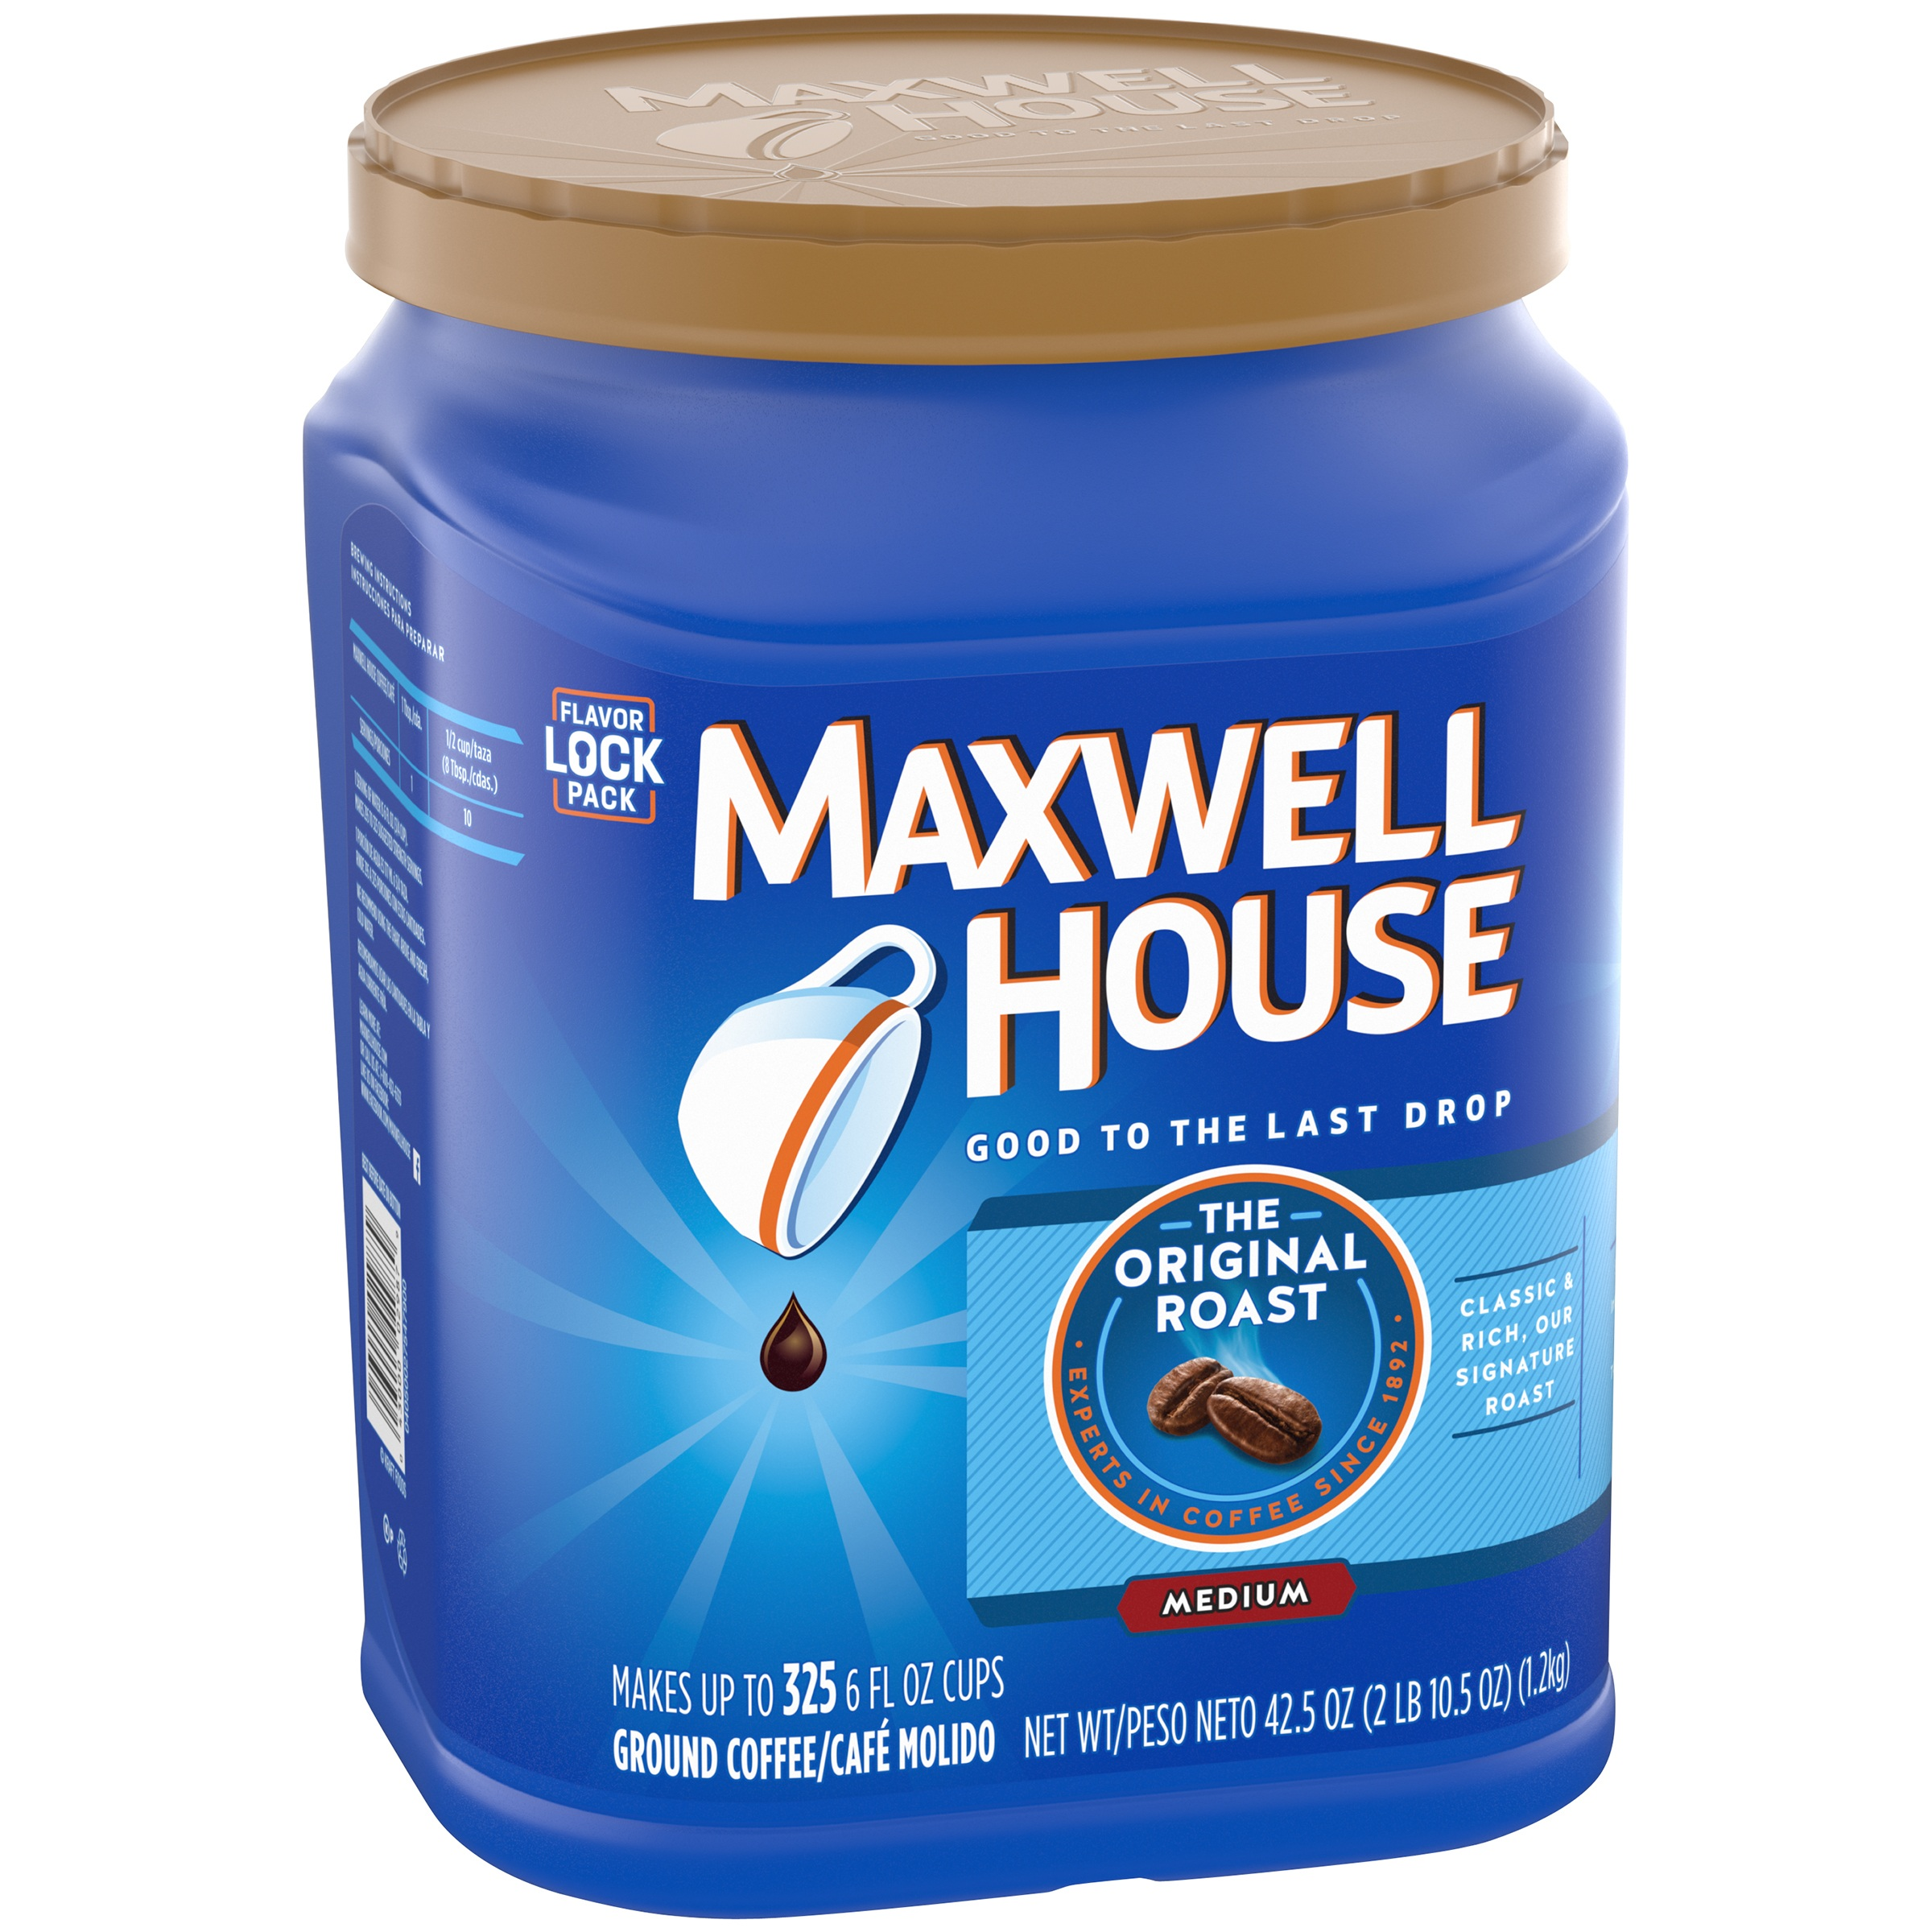 Maxwell House Original Roast Ground Coffee 42.5 oz. Canister